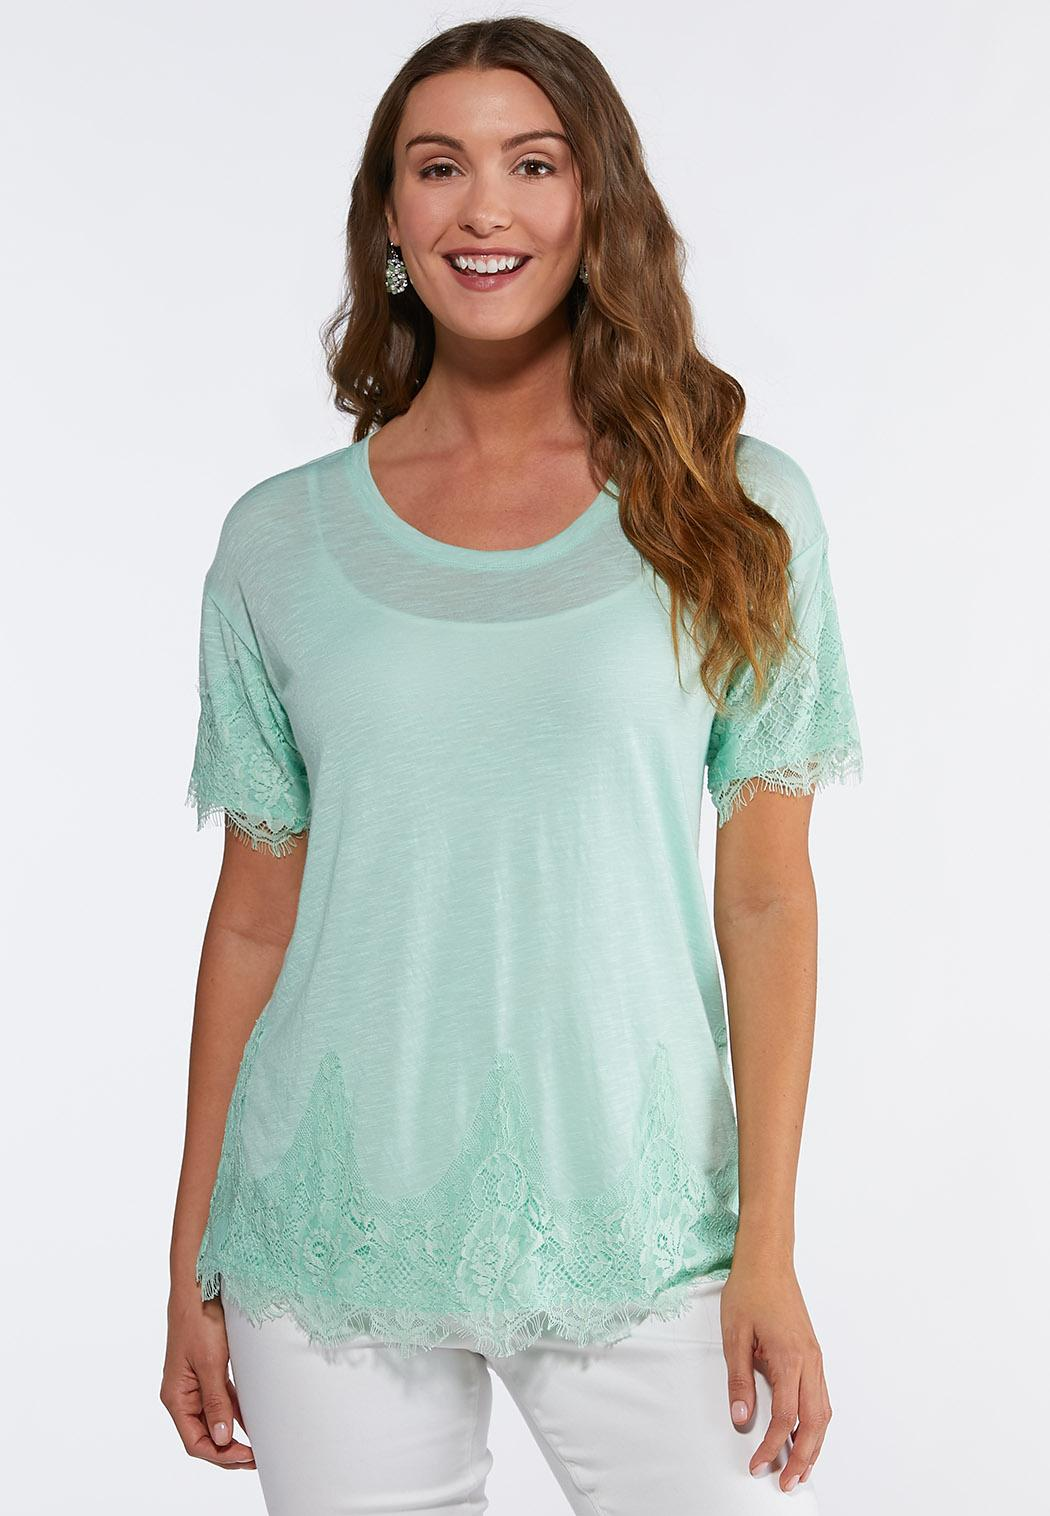 3785862331a588 Solid Lace Trim Tee alternate view Solid Lace Trim Tee